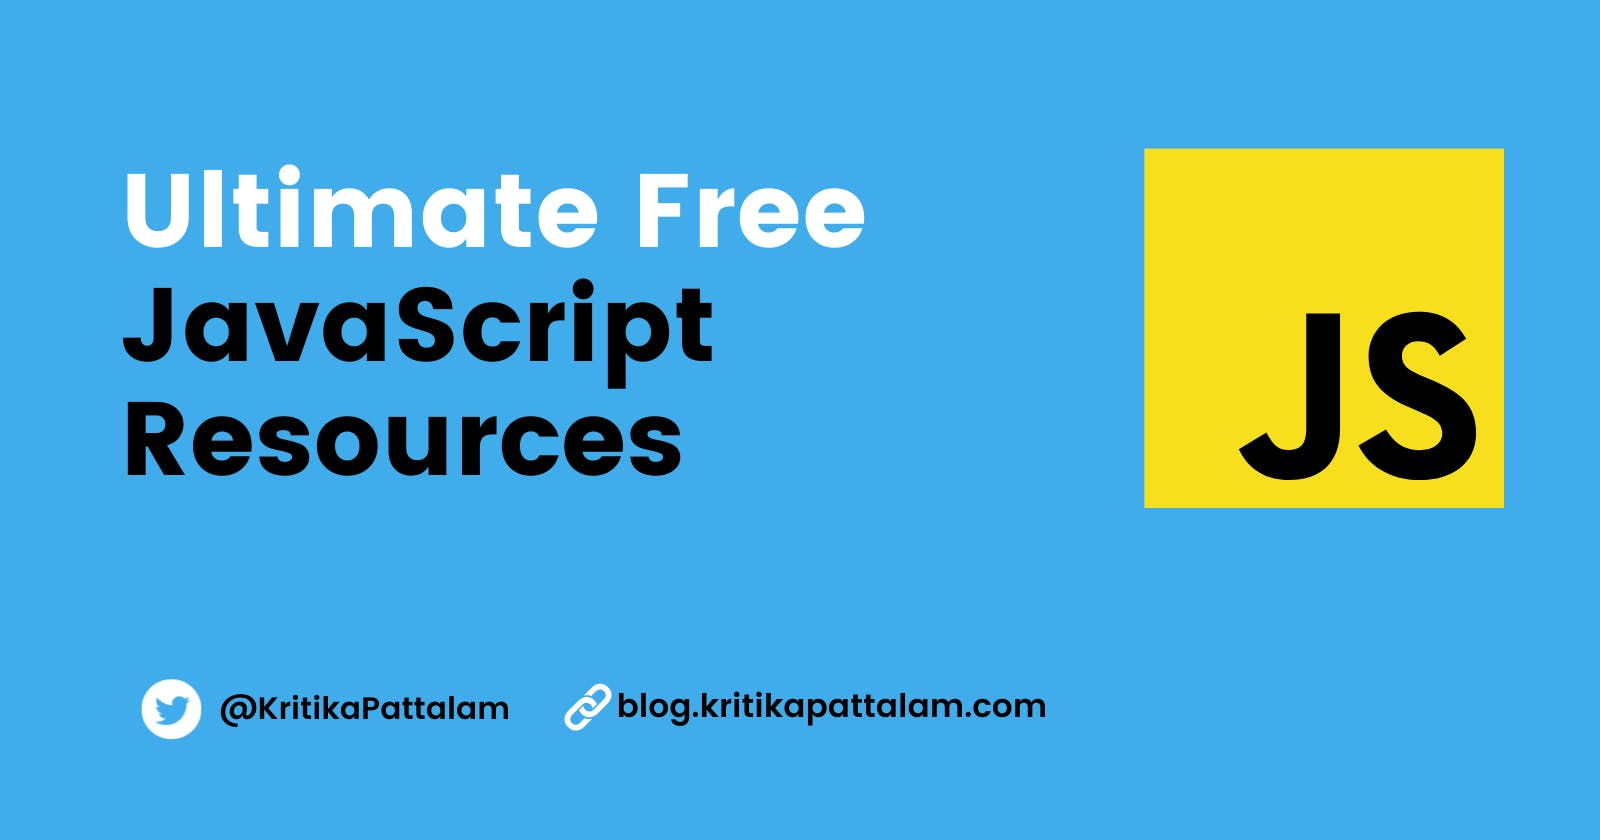 Getting Started with JavaScript - Ultimate Free Resources